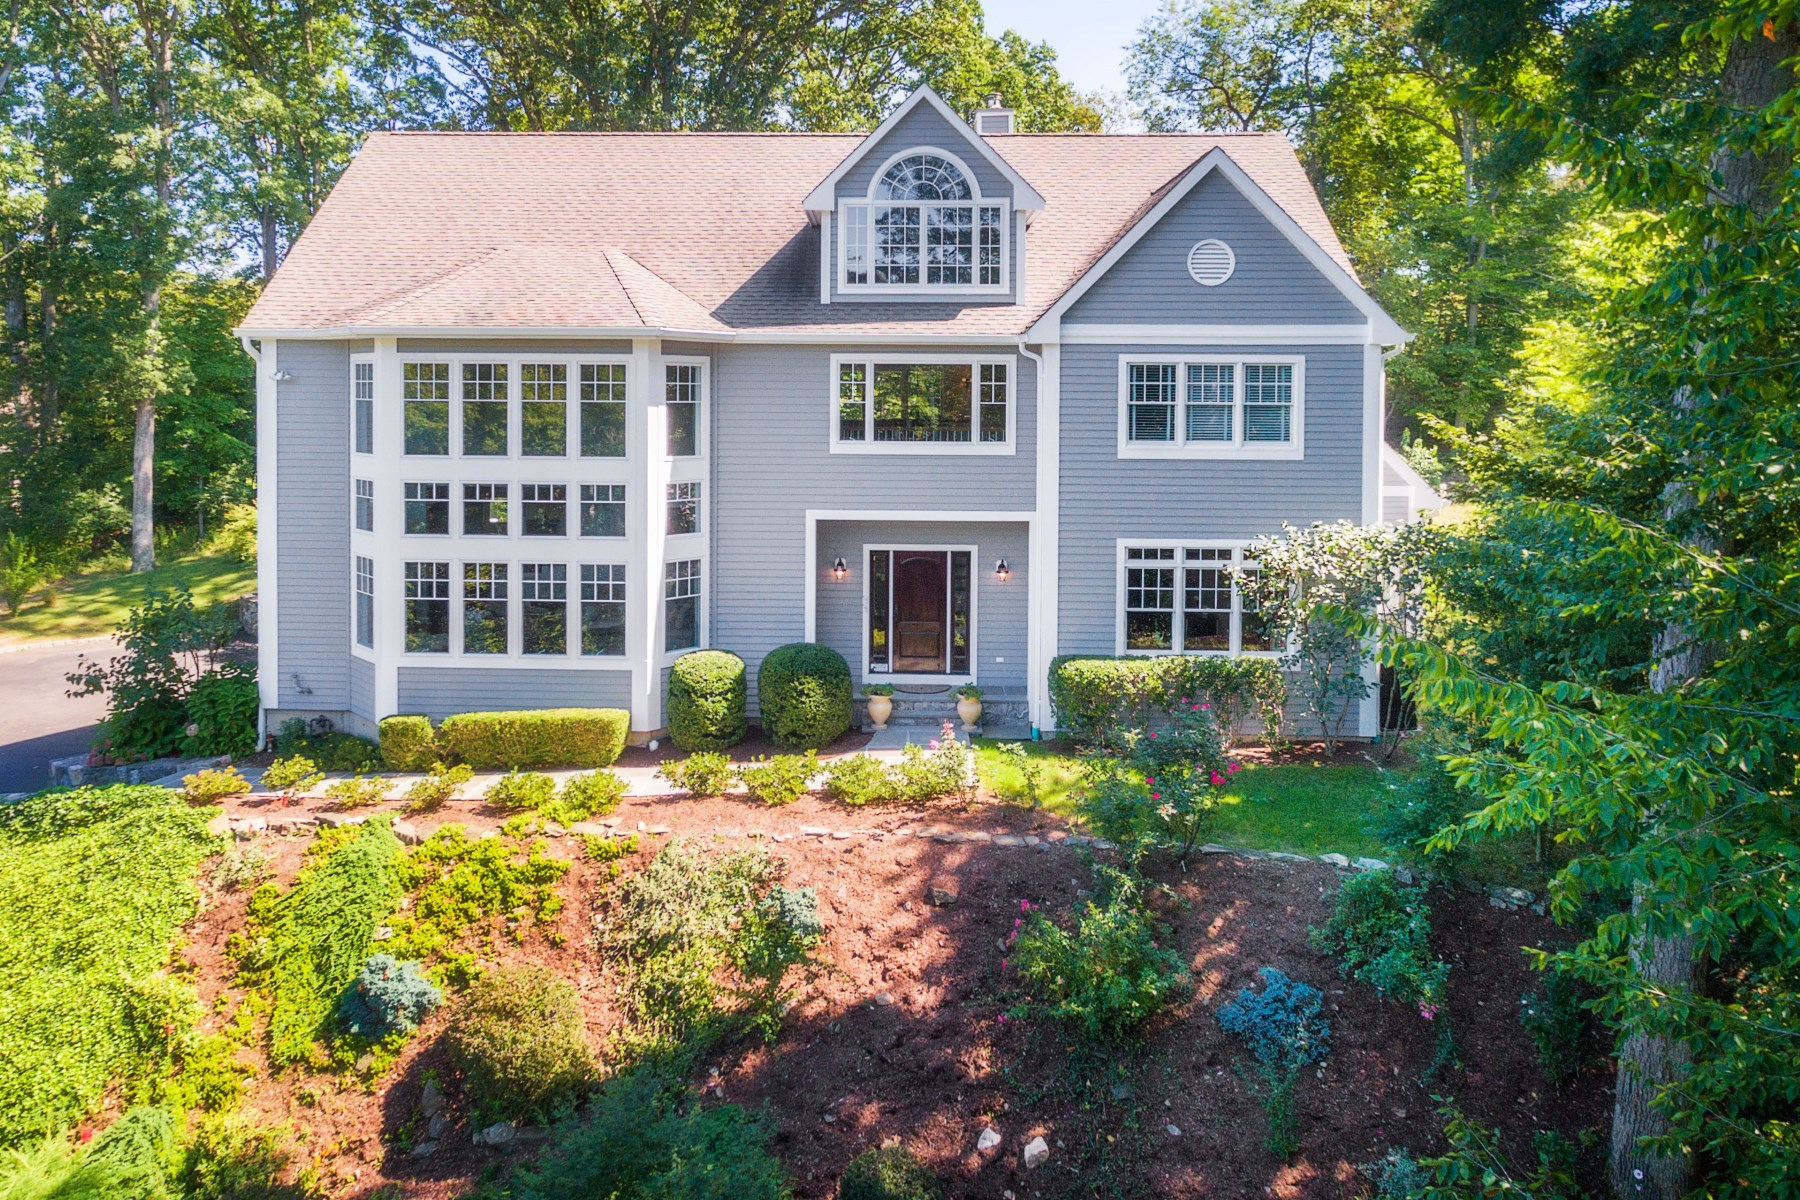 Single Family Home for Sale at Riverside Acres 28 Loading Rock Road Riverside, Connecticut 06878 United States